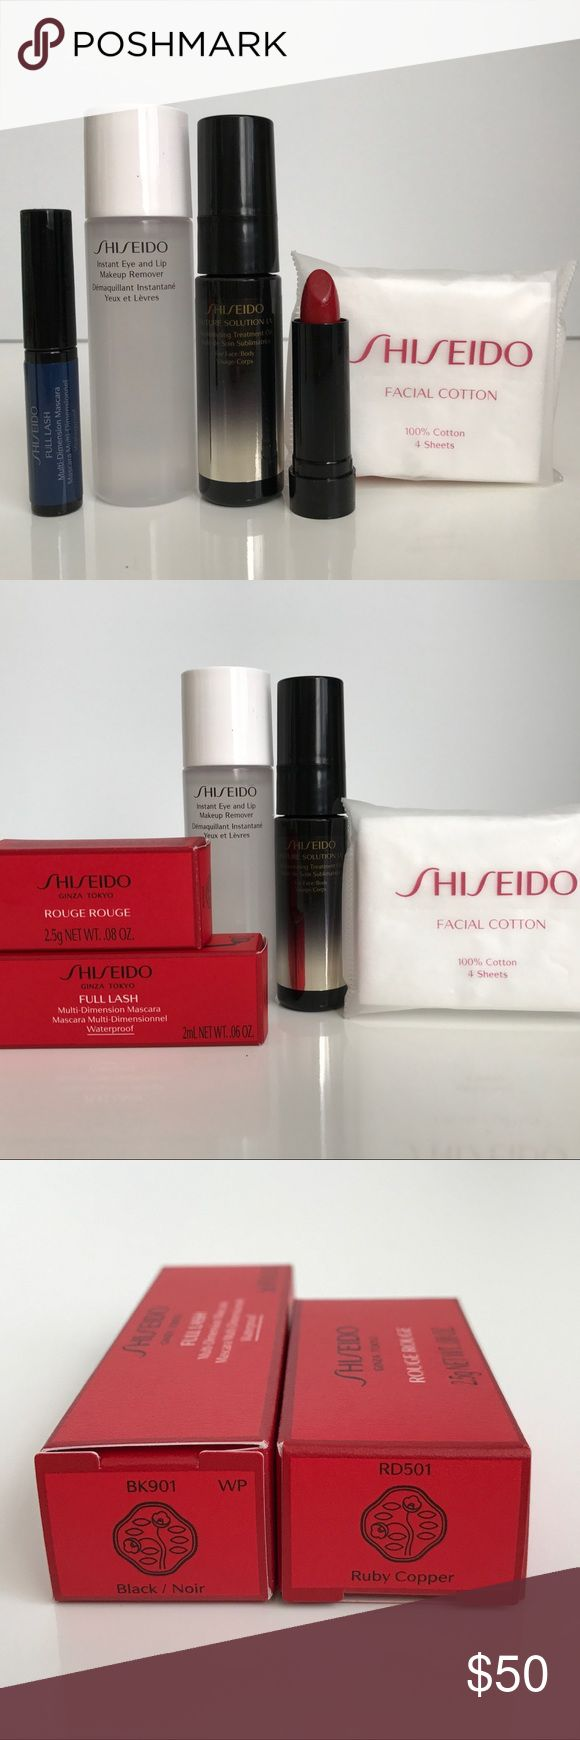 Shiseido Beautiful Future Eyes + Lips Travel size friendly. Great for a long weekend or purse essential items. Includes the following •Future Solution LX Replenishing Treatment Oil 15ml •Full Lash Multi-Dimension Mascara Waterproof BK091 Black 2ml •Instant Eye and Lip Makeup Remover 30ml •Facial Cotton 4 sheets •Retail value $66. Never used. Includes a Shiseido make up bag. Sephora Makeup